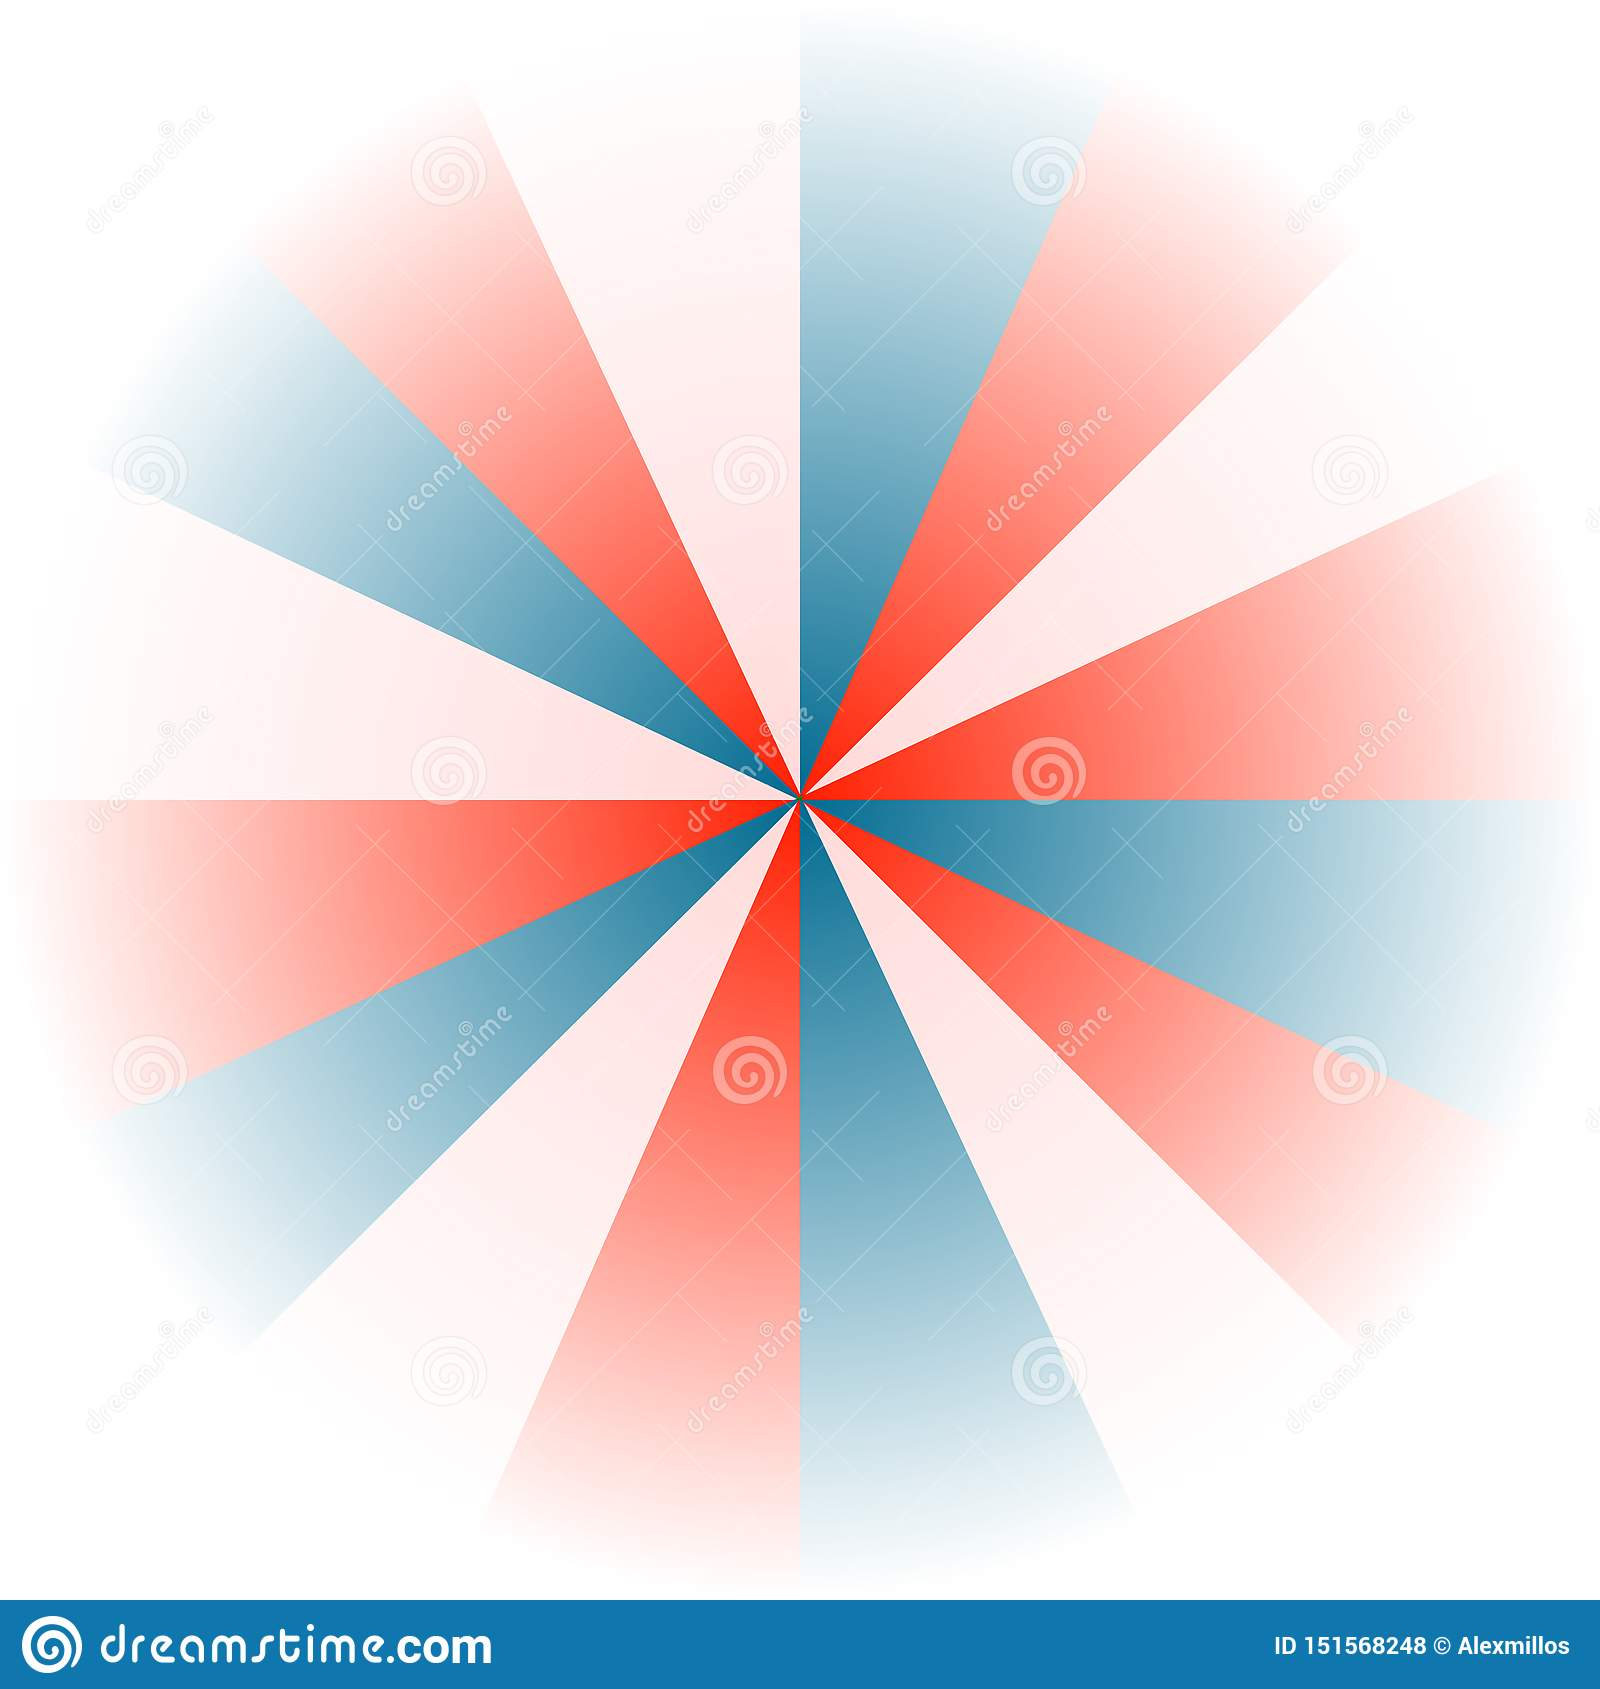 red, white and blue background